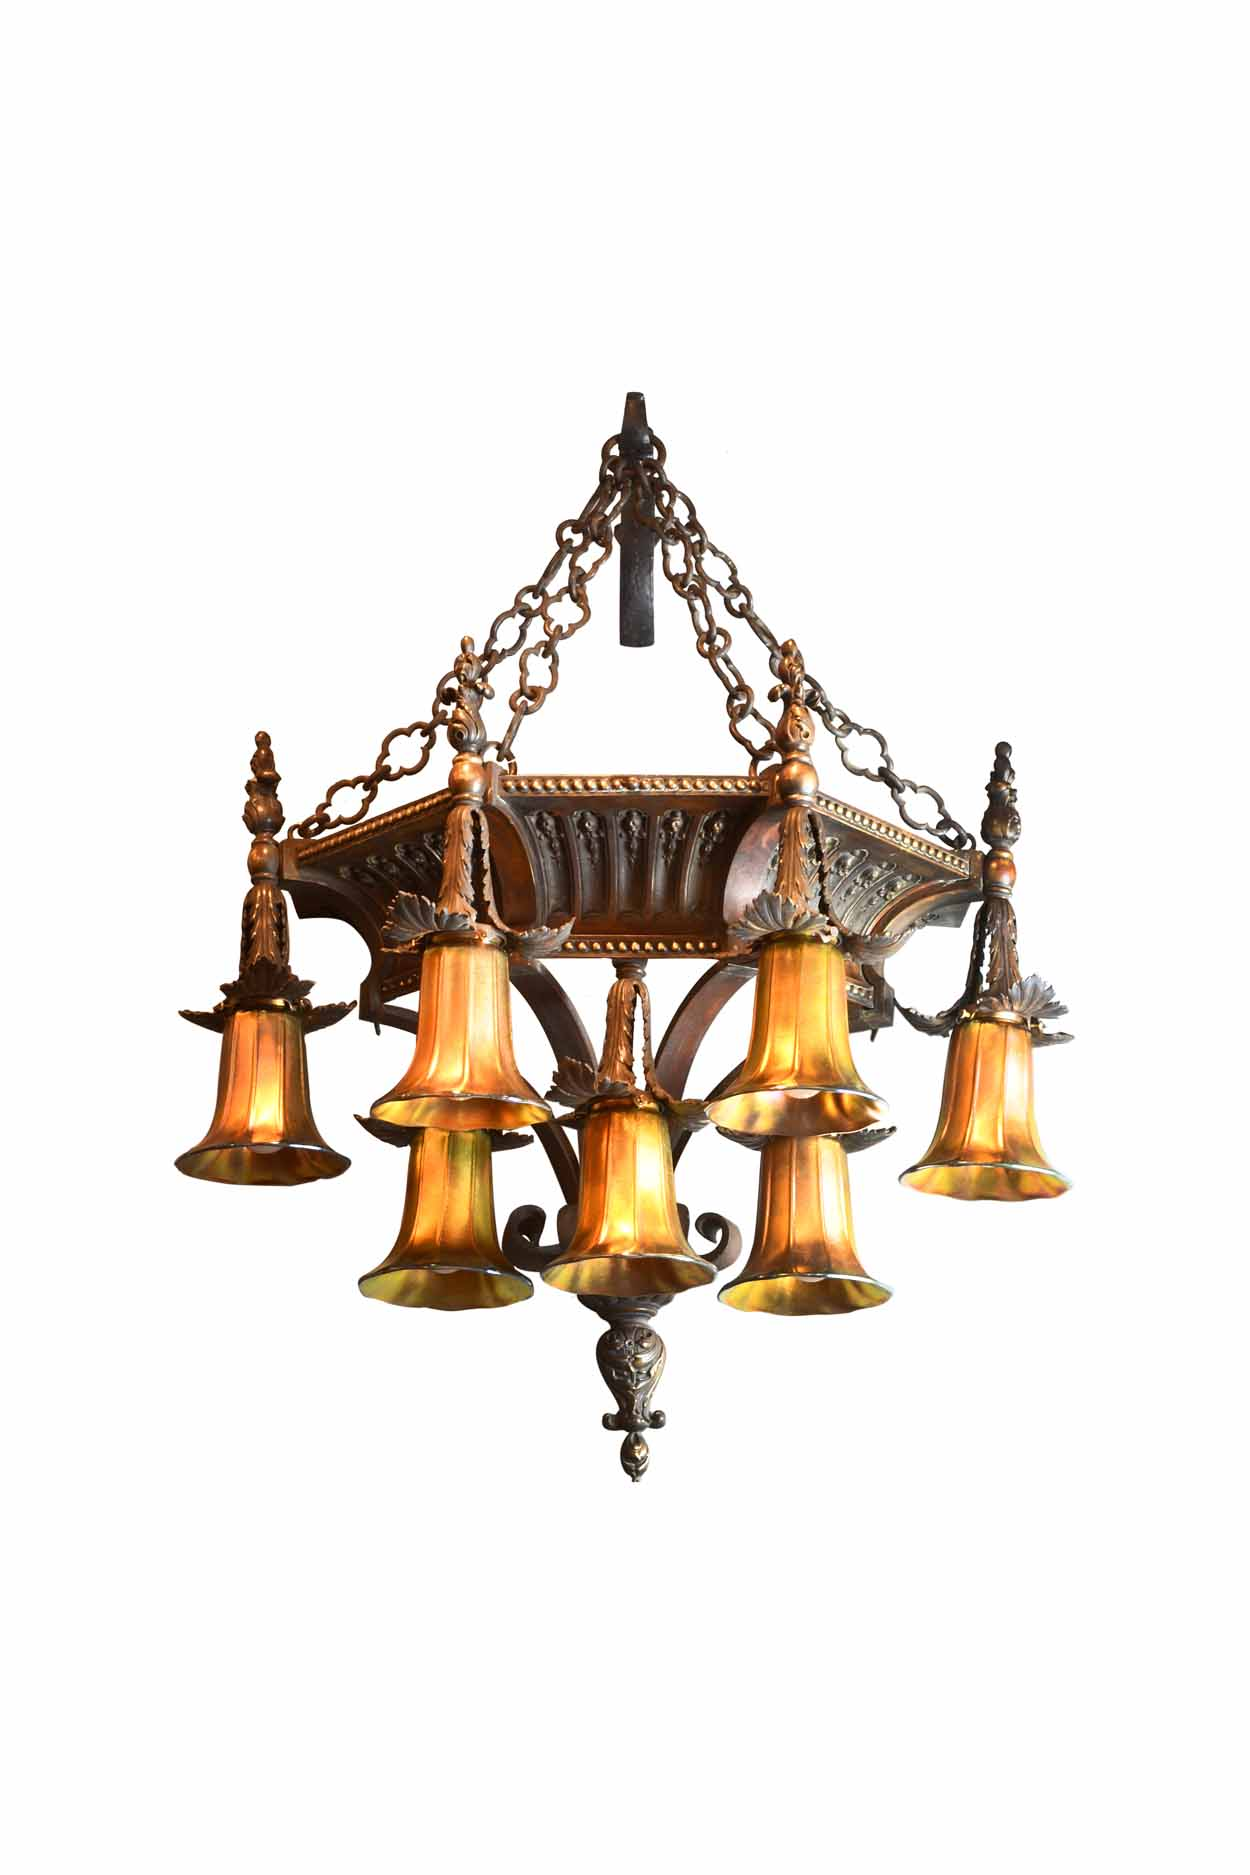 HEAVY CAST BRONZE 7 LIGHT WALL SCONCE    Click here for more information